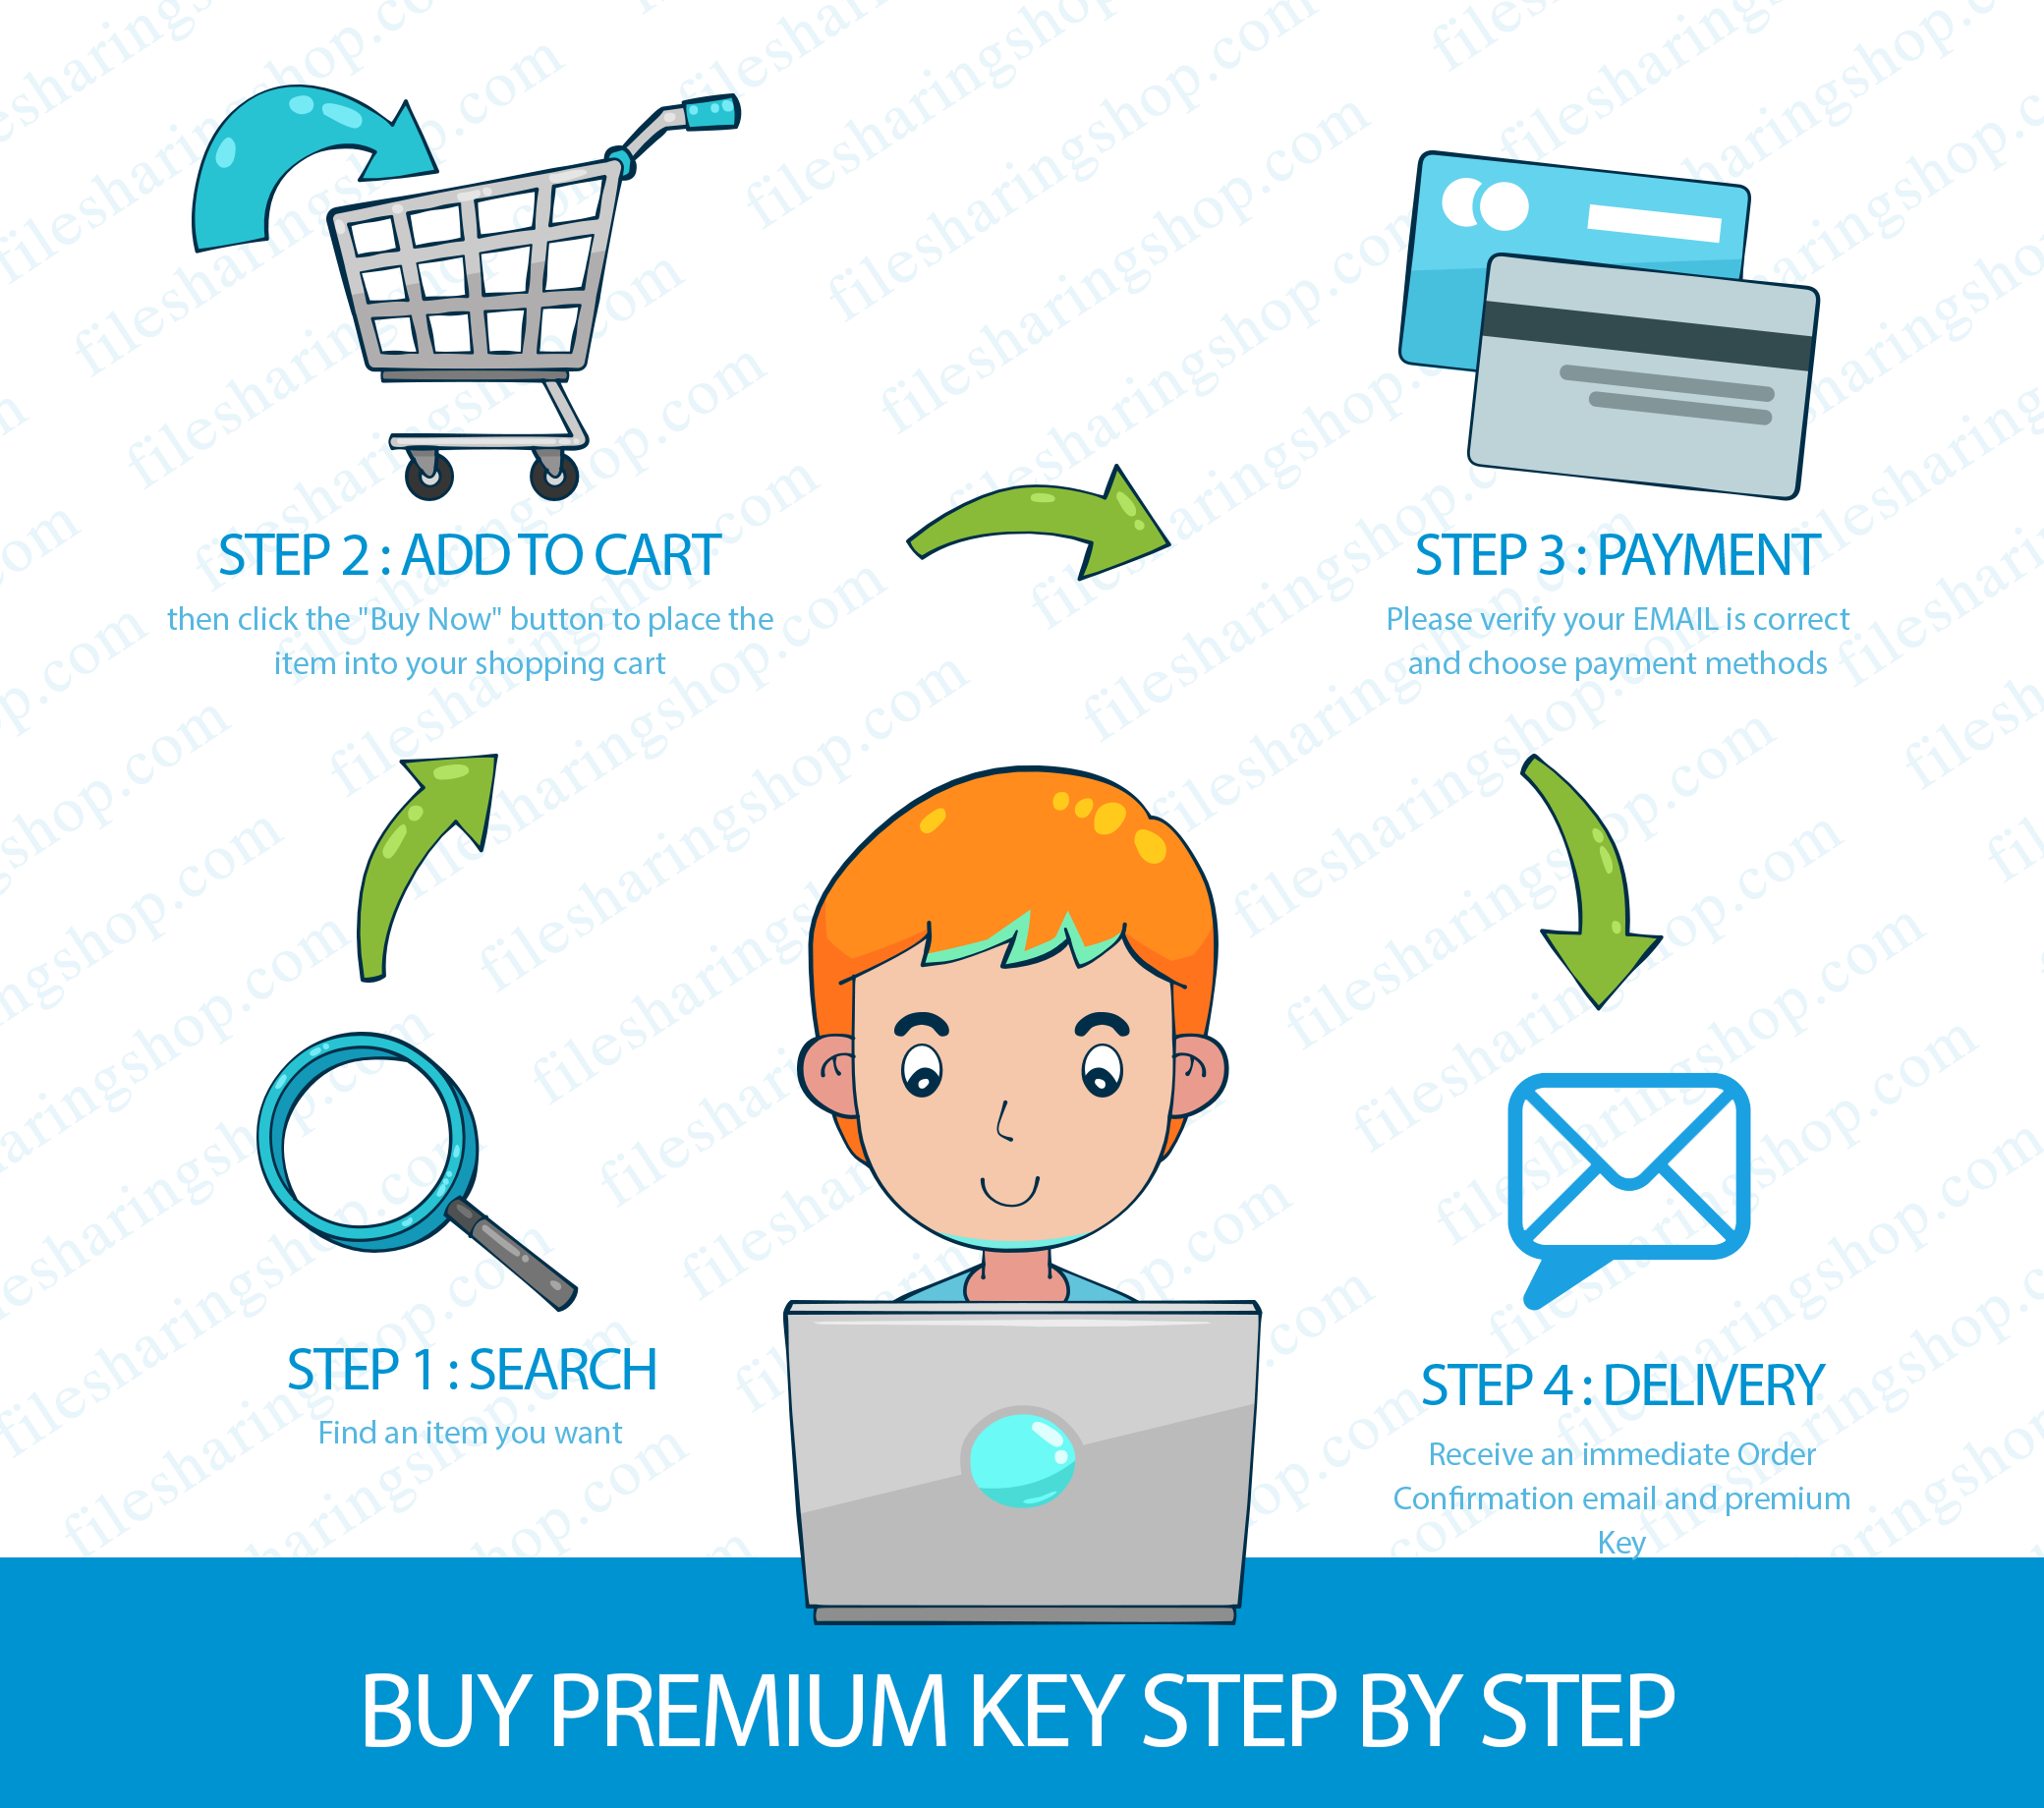 HOW TO BUY FILE PREMIUM